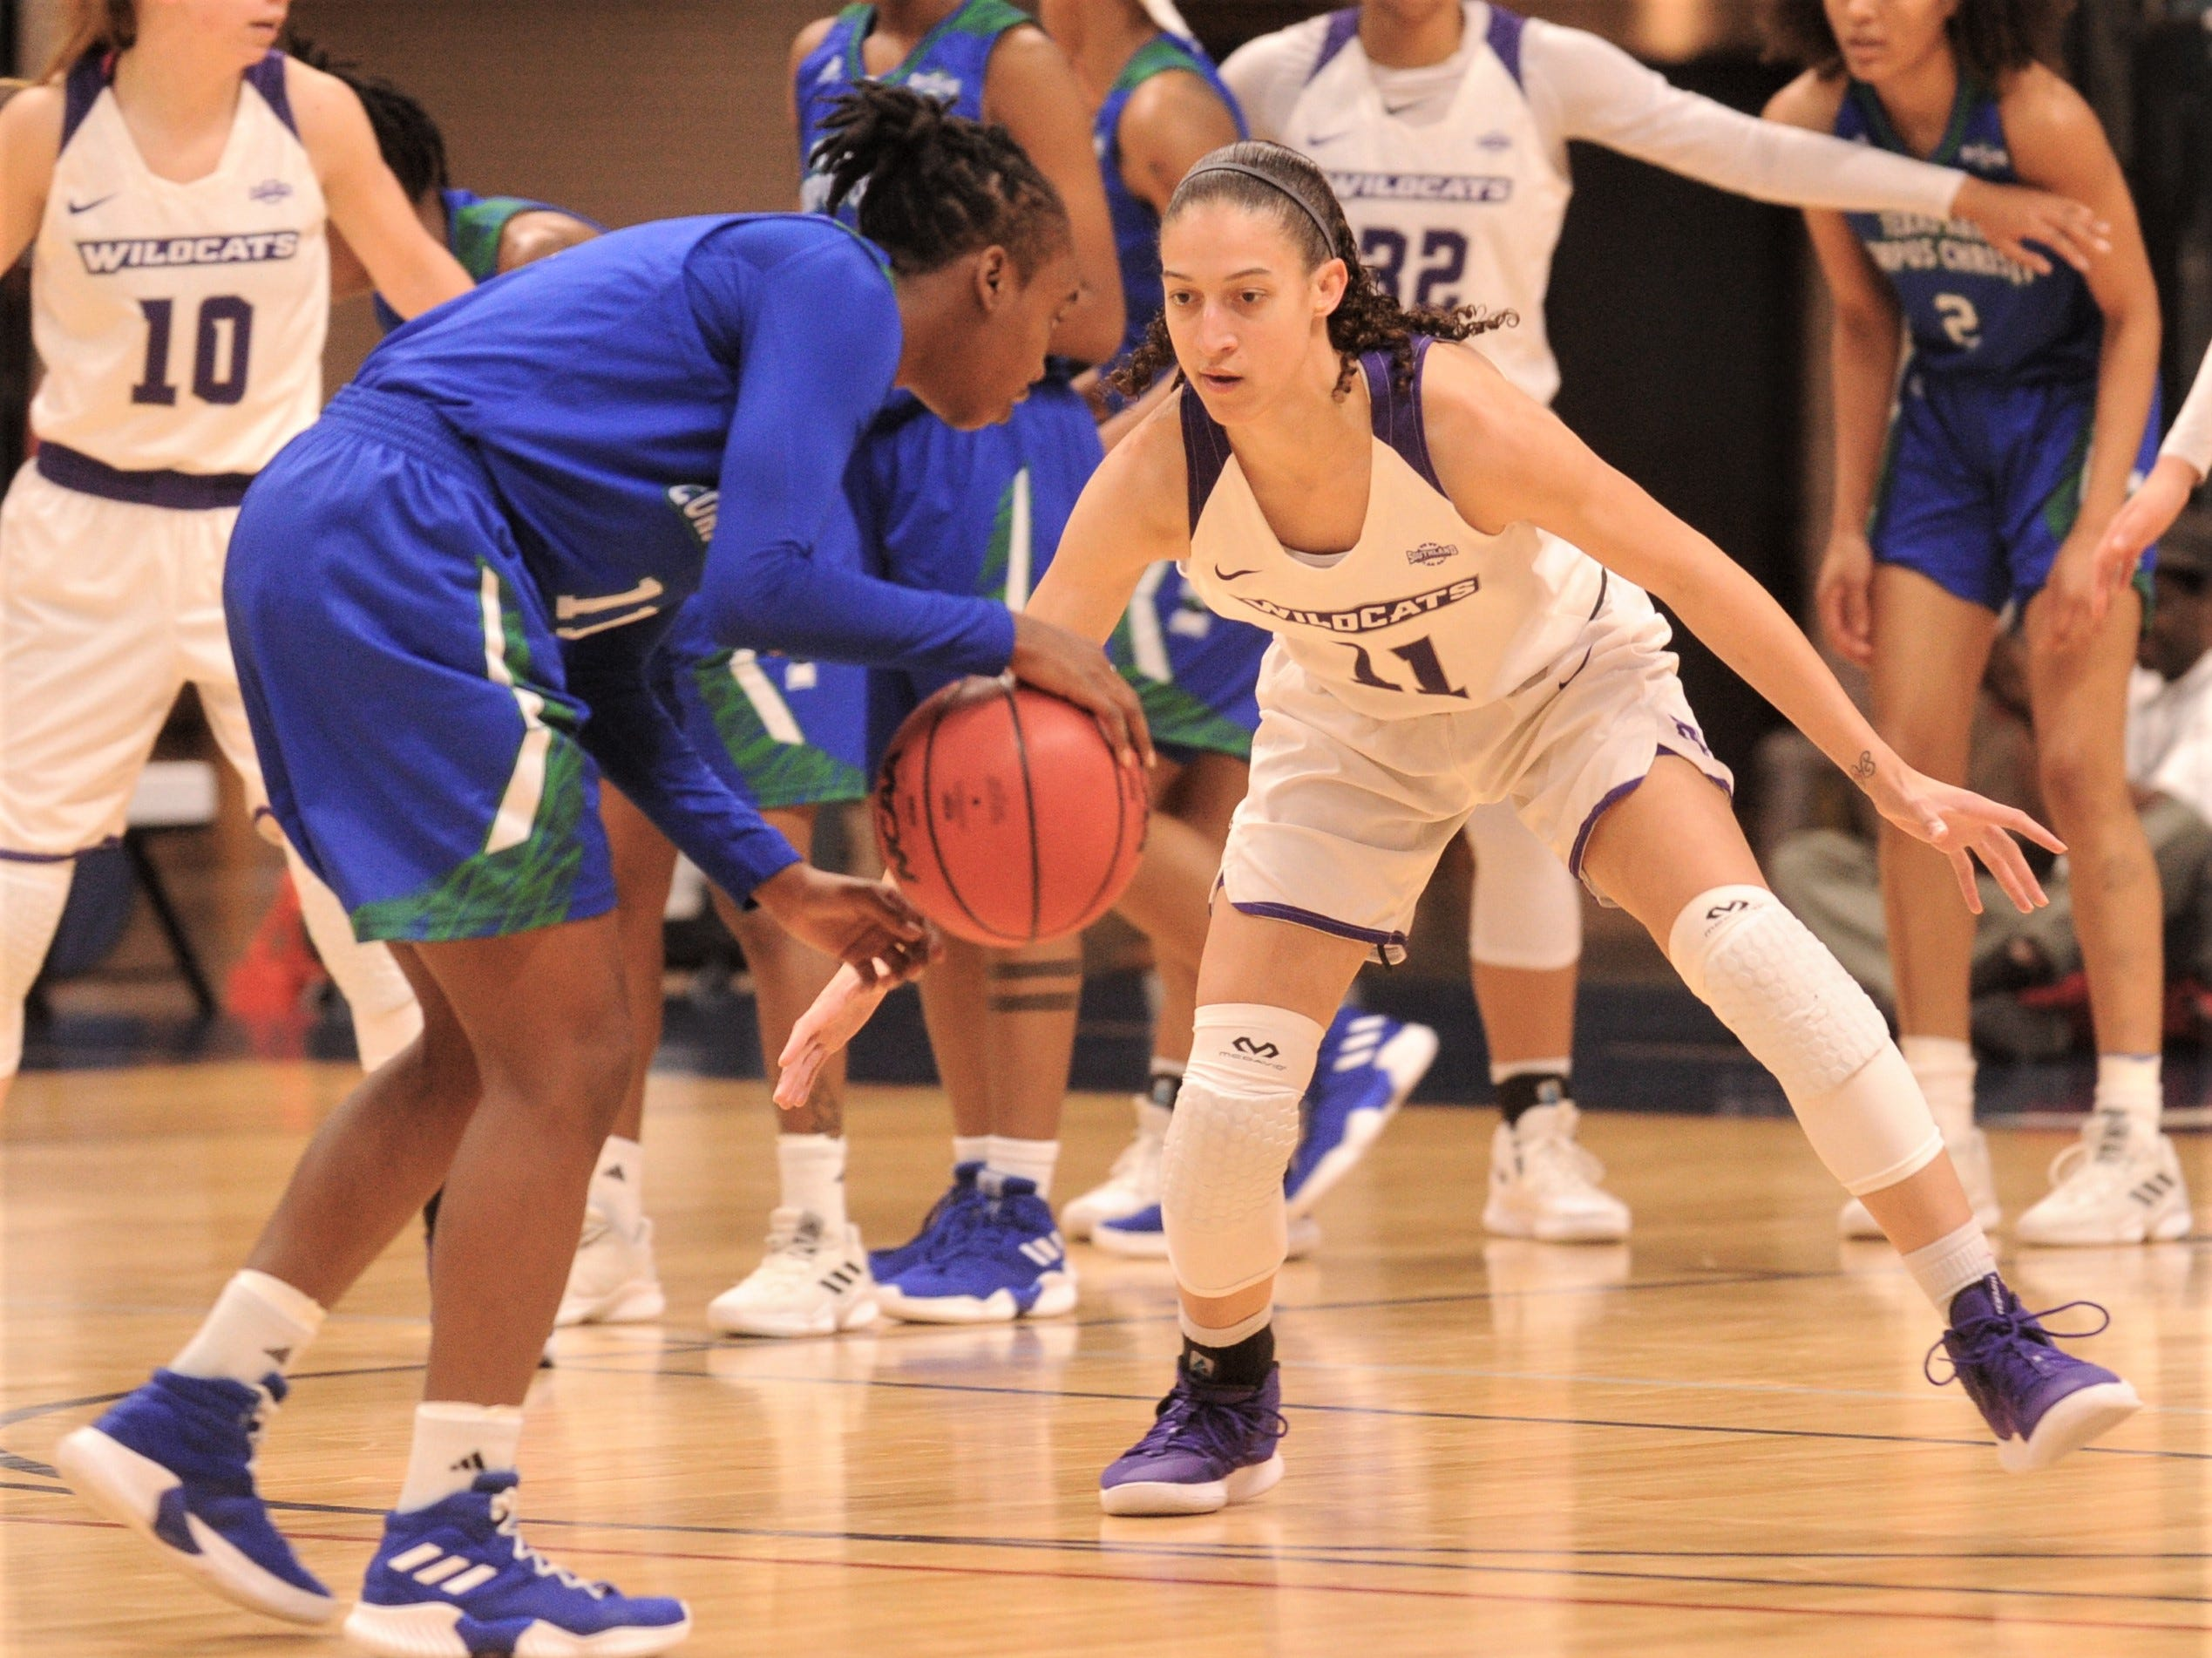 ACU's Sara Williamson, right, defends against a Texas A&M-Corpus Christi player. ACU beat the Islanders 69-68 in the Southland Conference women's tournament championship game Sunday, March 17, 2019, at the Merrell Center in Katy.